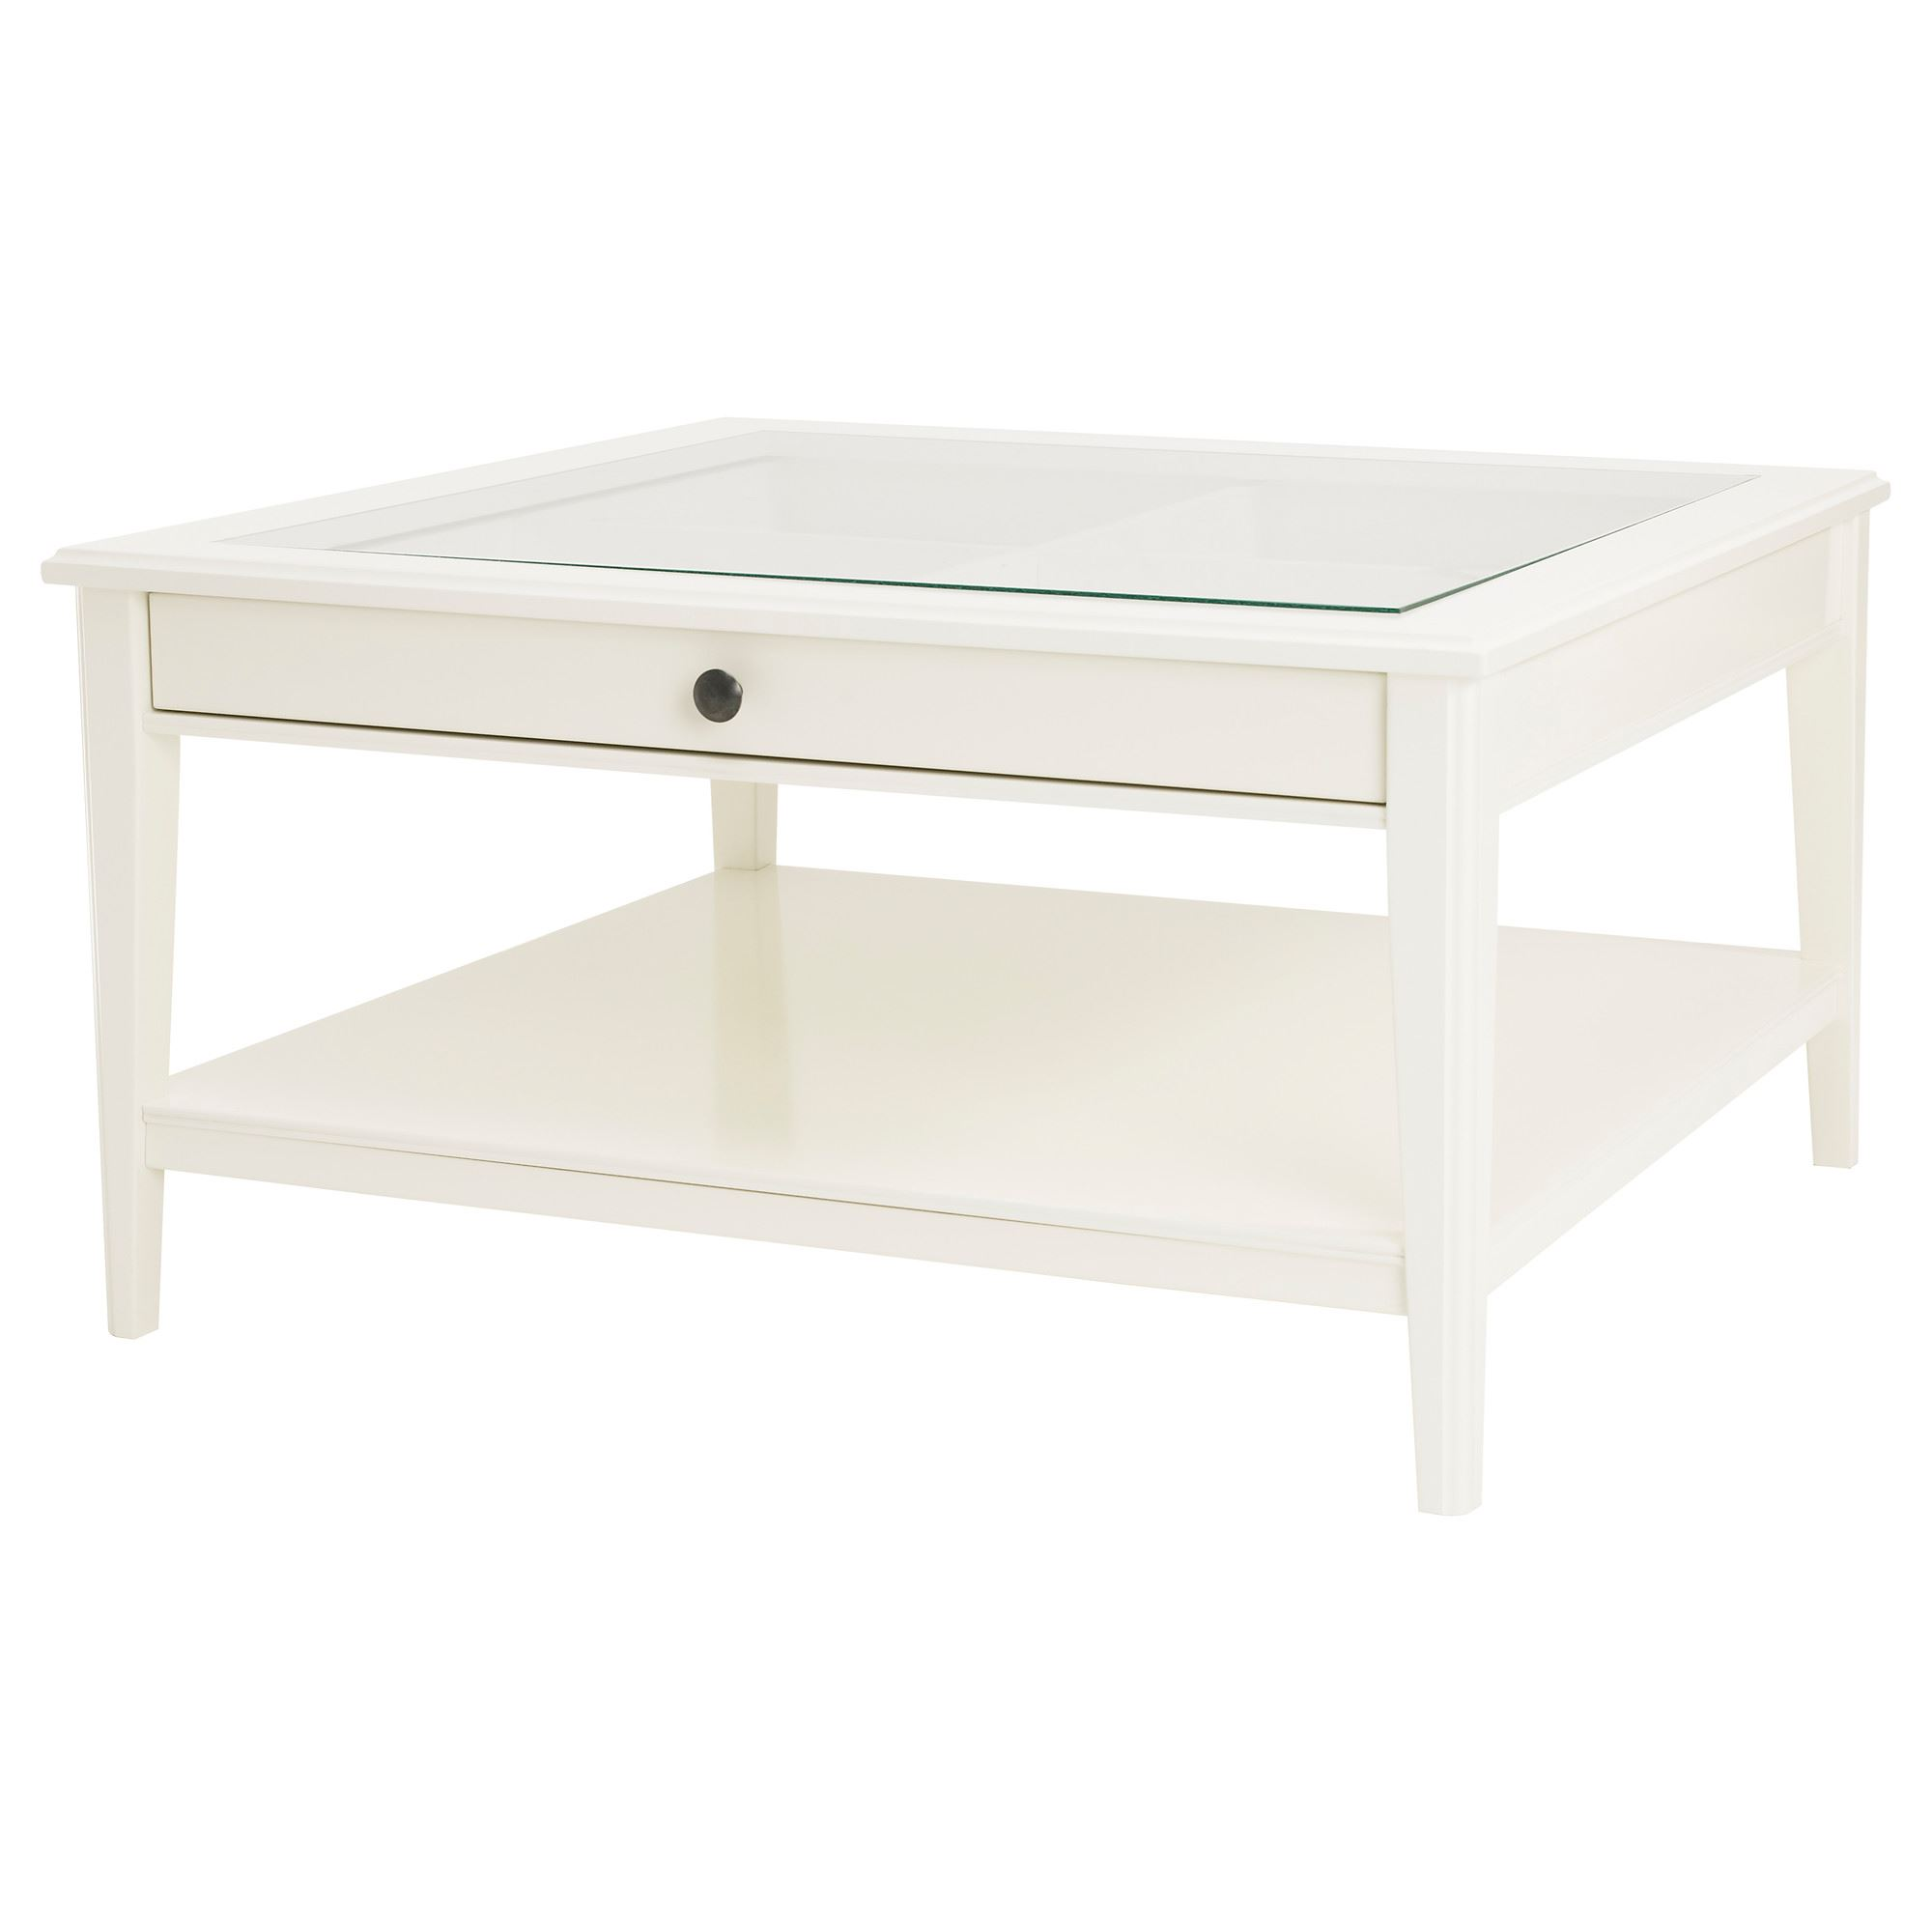 home modern mid table century furniture of tables i end product distressed white today tone america grey arella overstock garden coffee shipping free